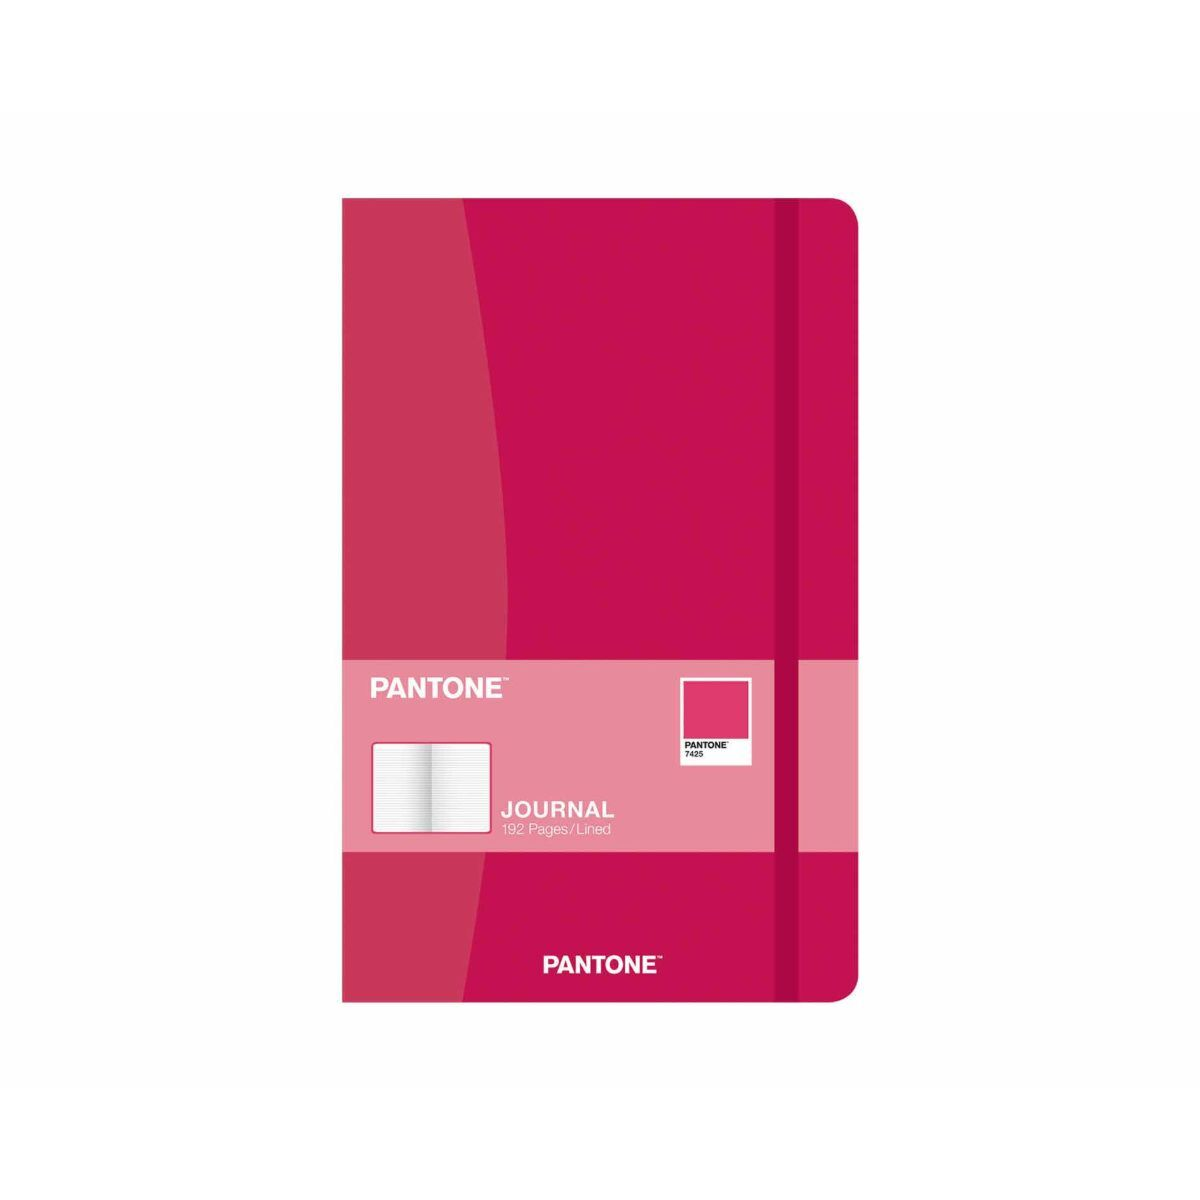 PANTONE Compact Journal Ruled 192 Pages Red